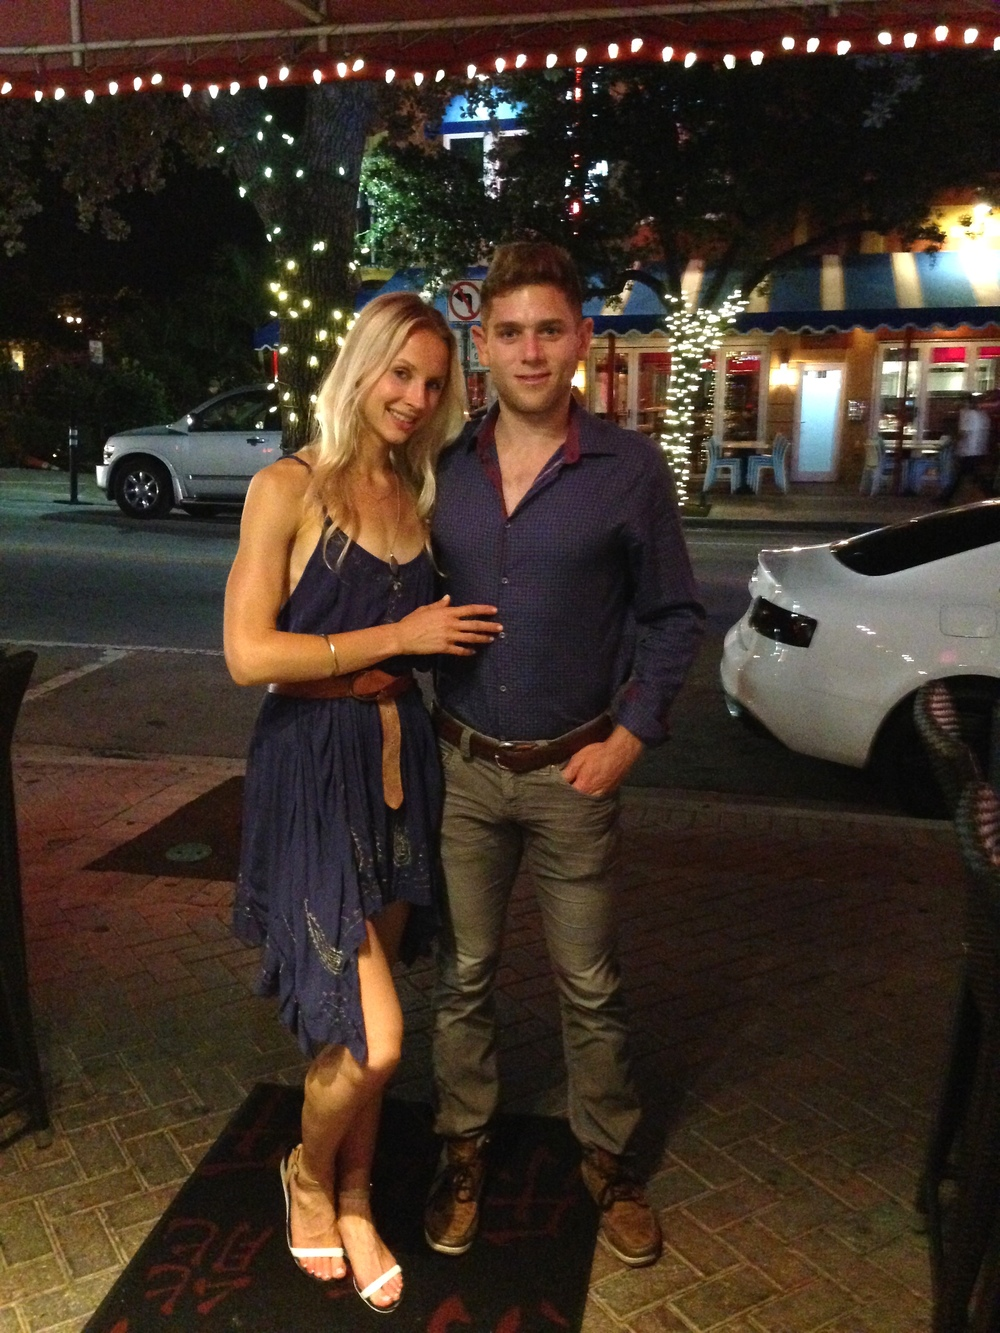 2014 marked a watershed year for the Slice, as the Couple determined that they would arrange the event locally in years to come.  AFC posed here for a shot before their once-a-year dinner on Atlantic Ave in Delray Beach, at that point still thin and cravings-free.